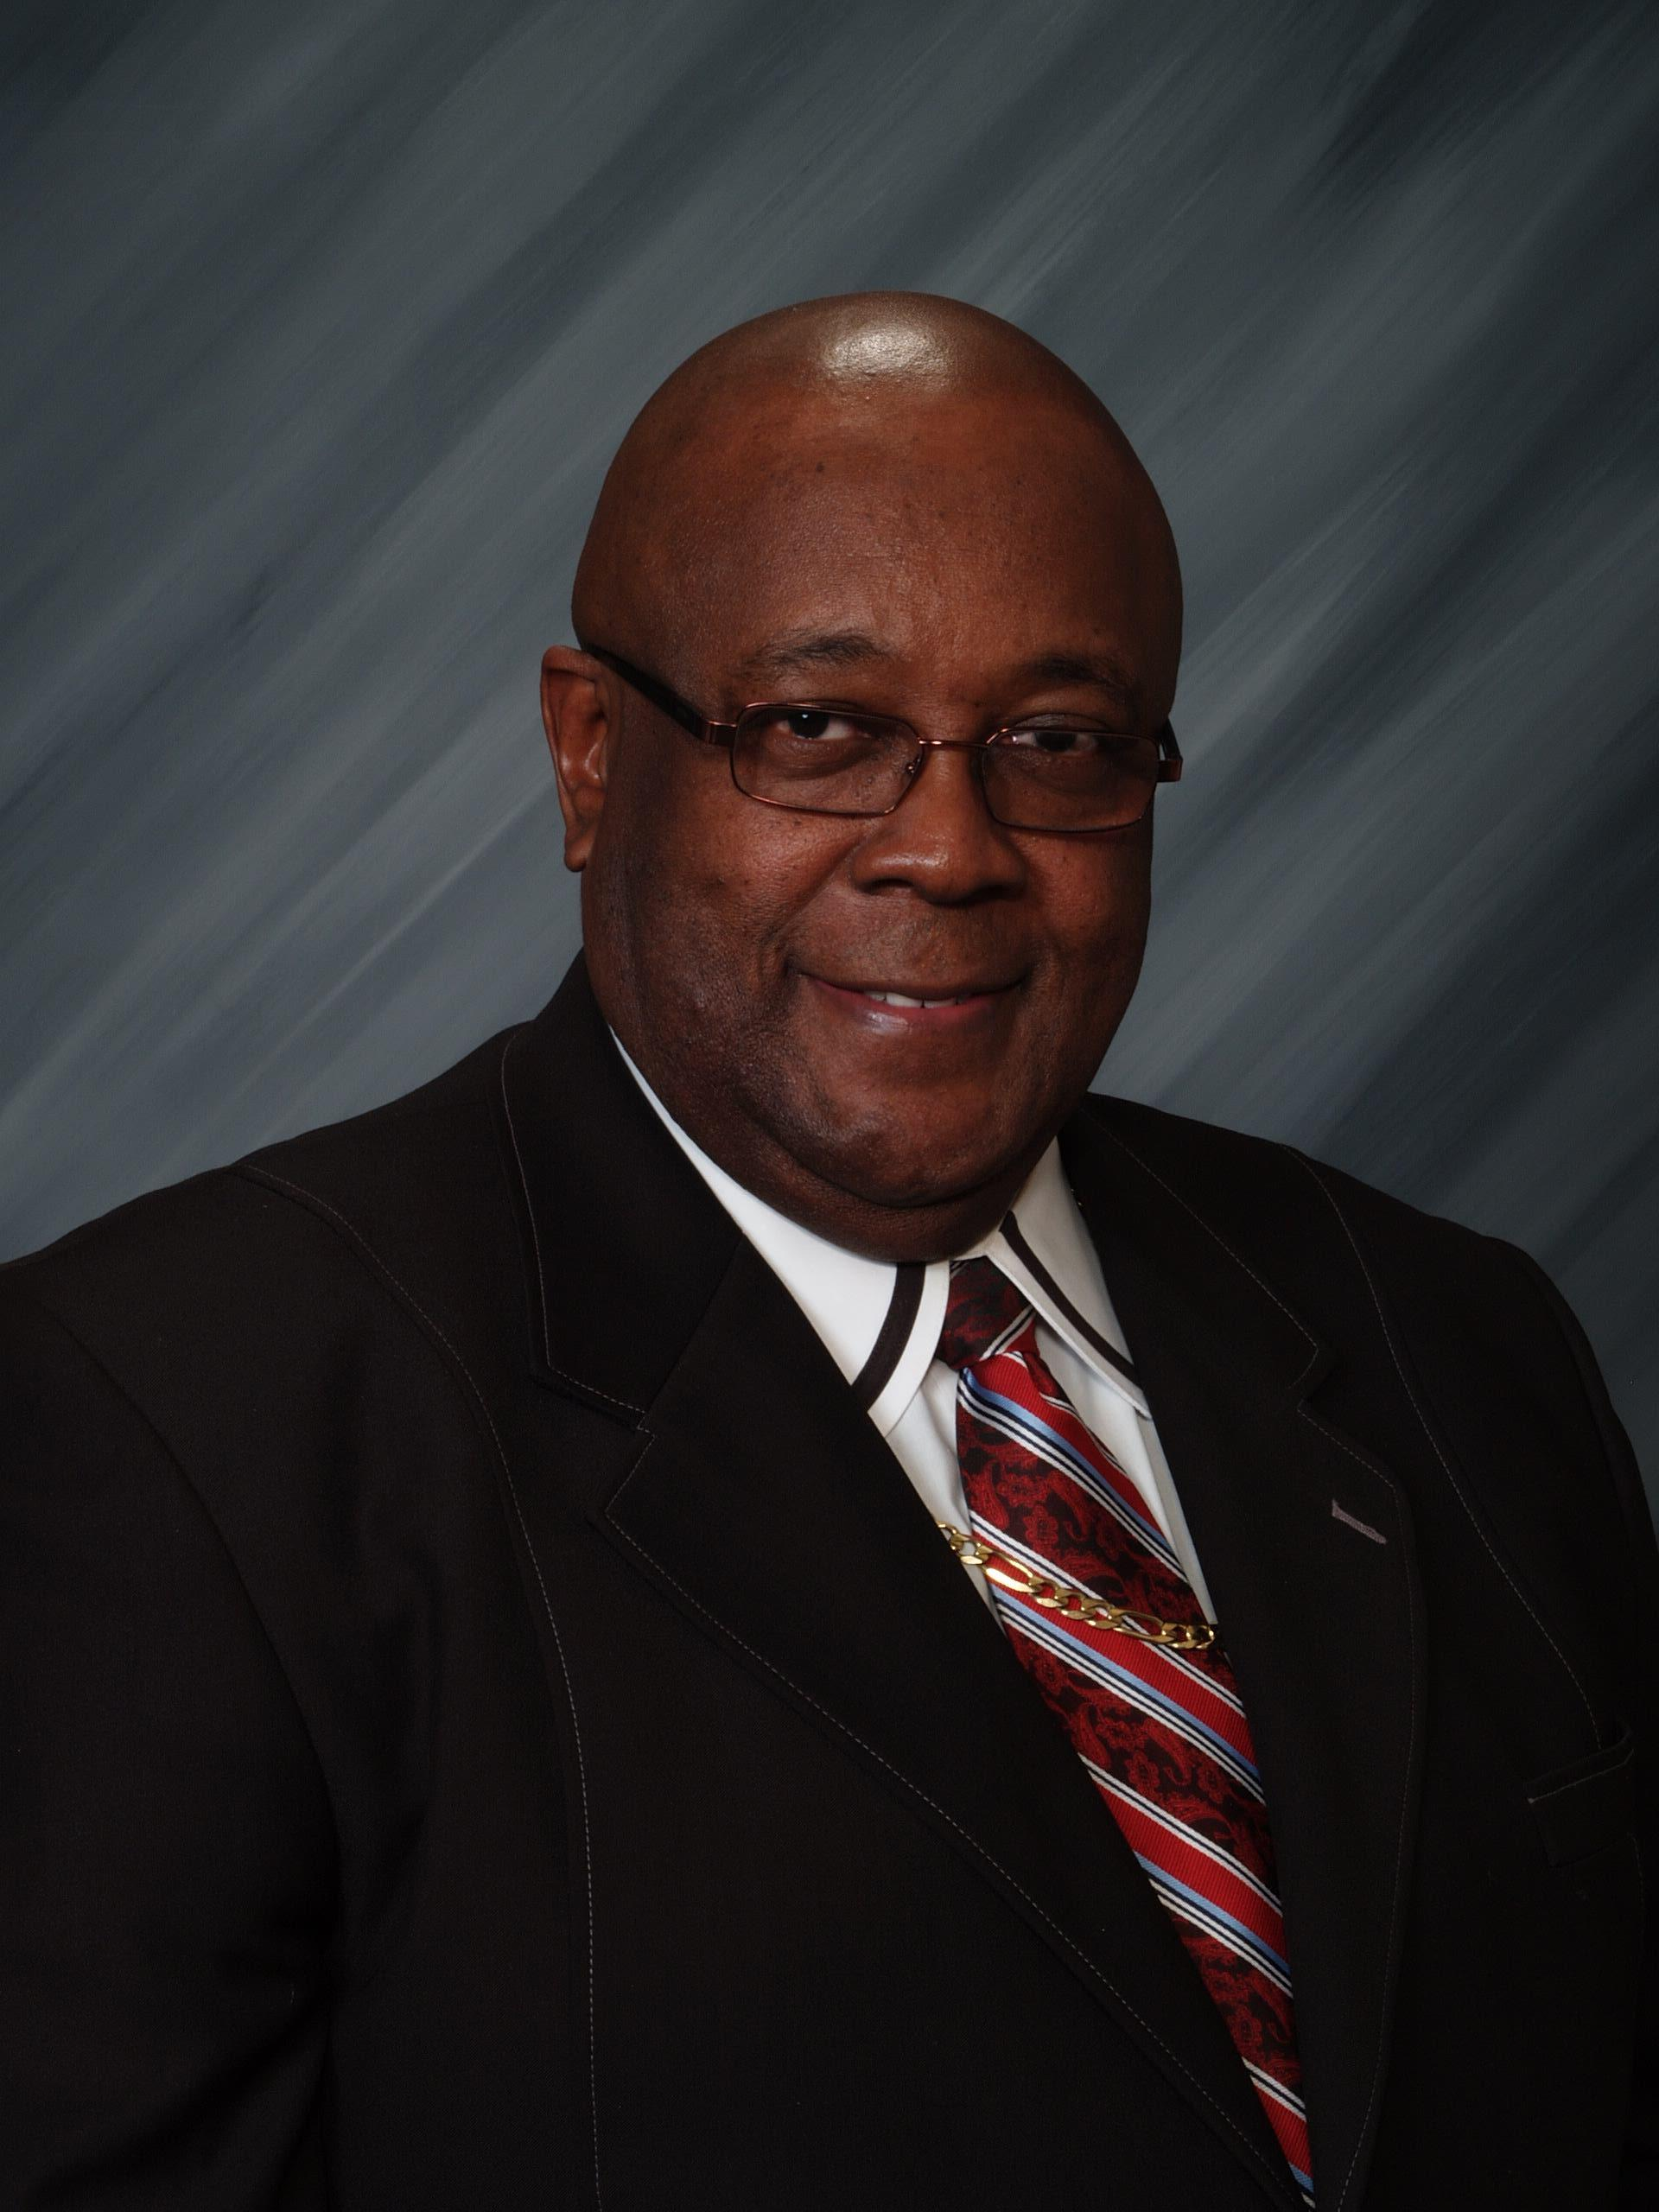 President of Wren and Sons Funeral Home, LLCBishop Peter Wren Sr.National Director & Mortician